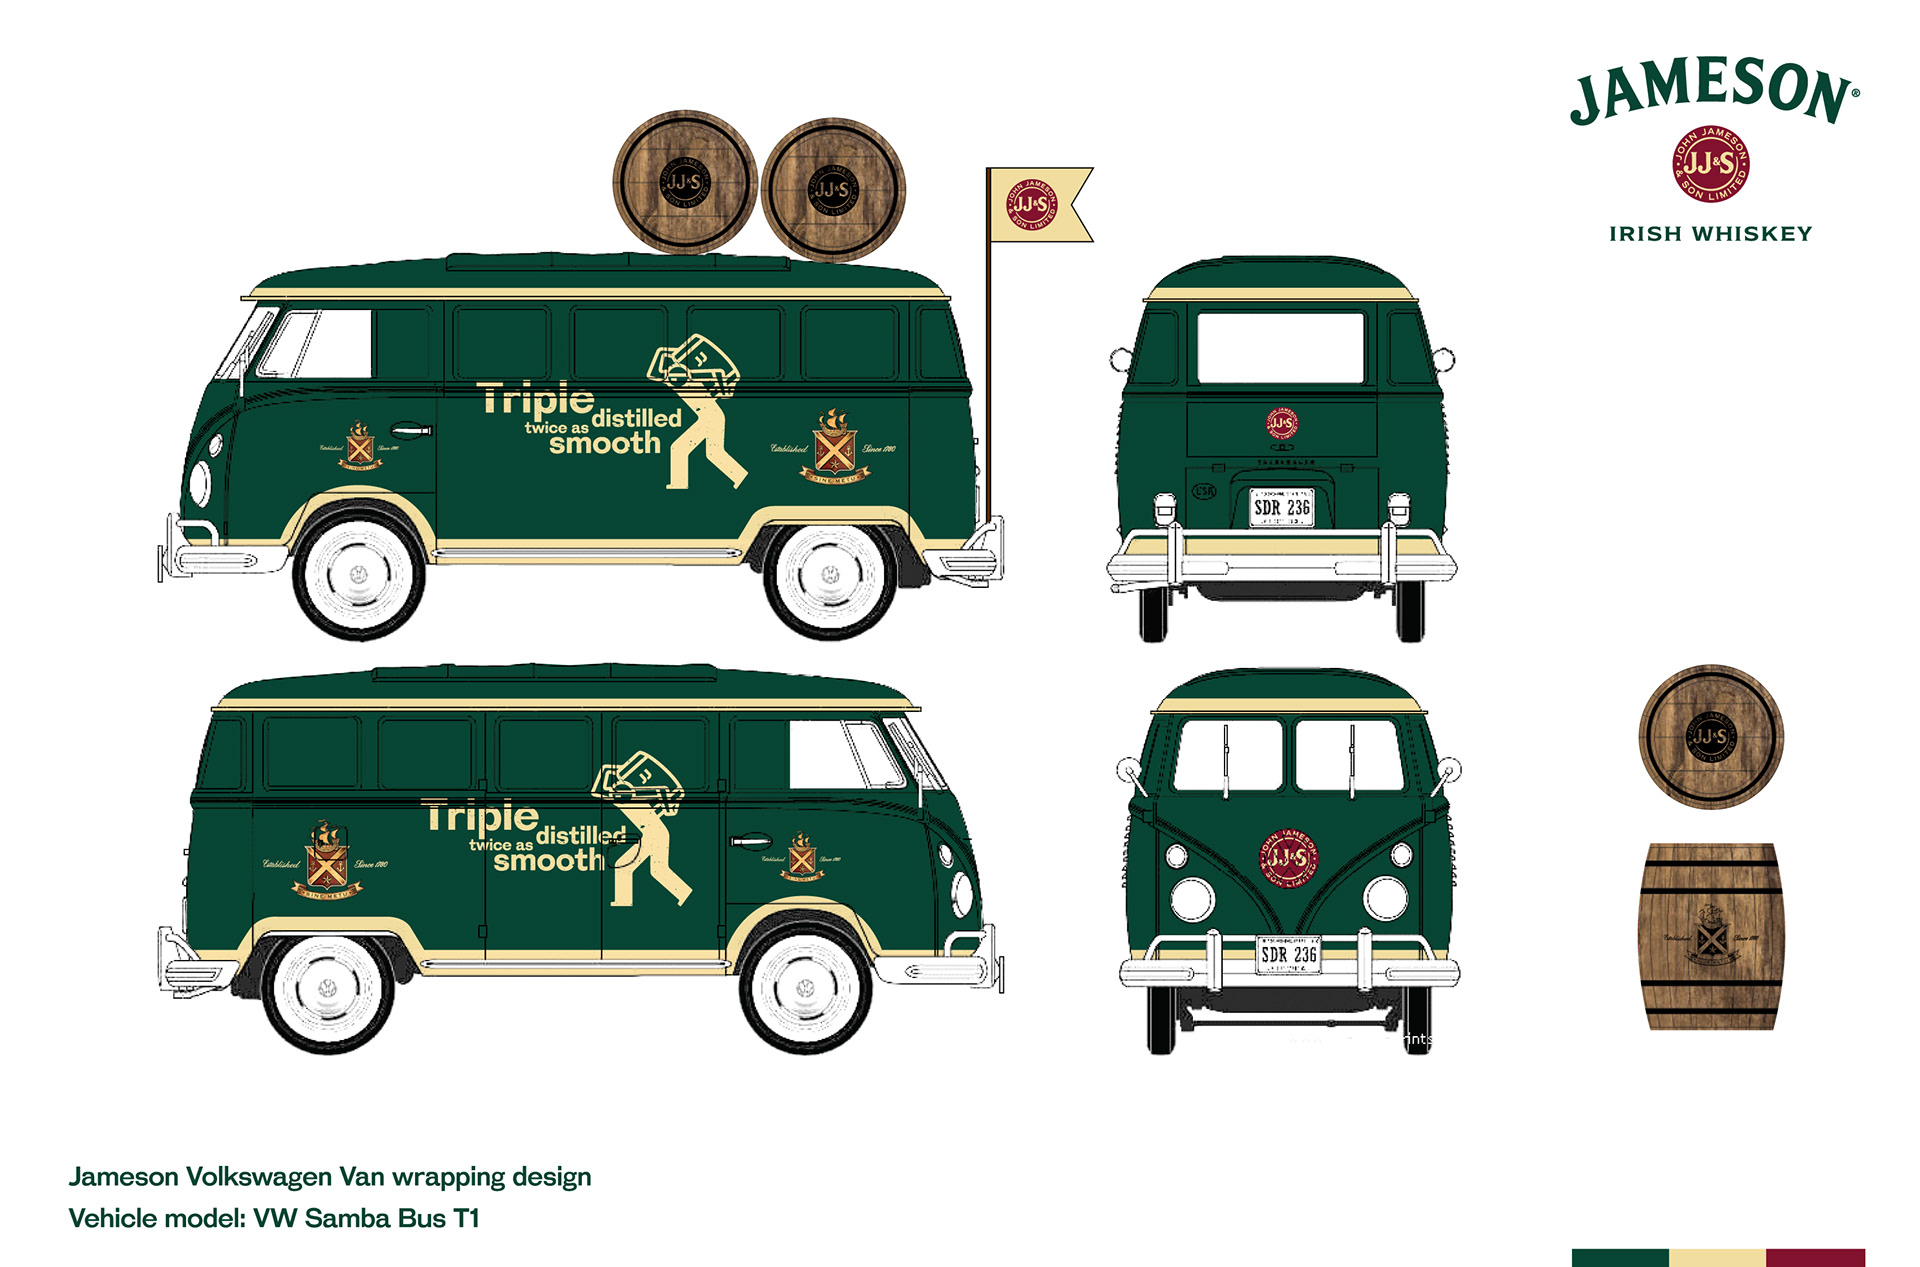 Jameson VW Van By Whiskey Thailand